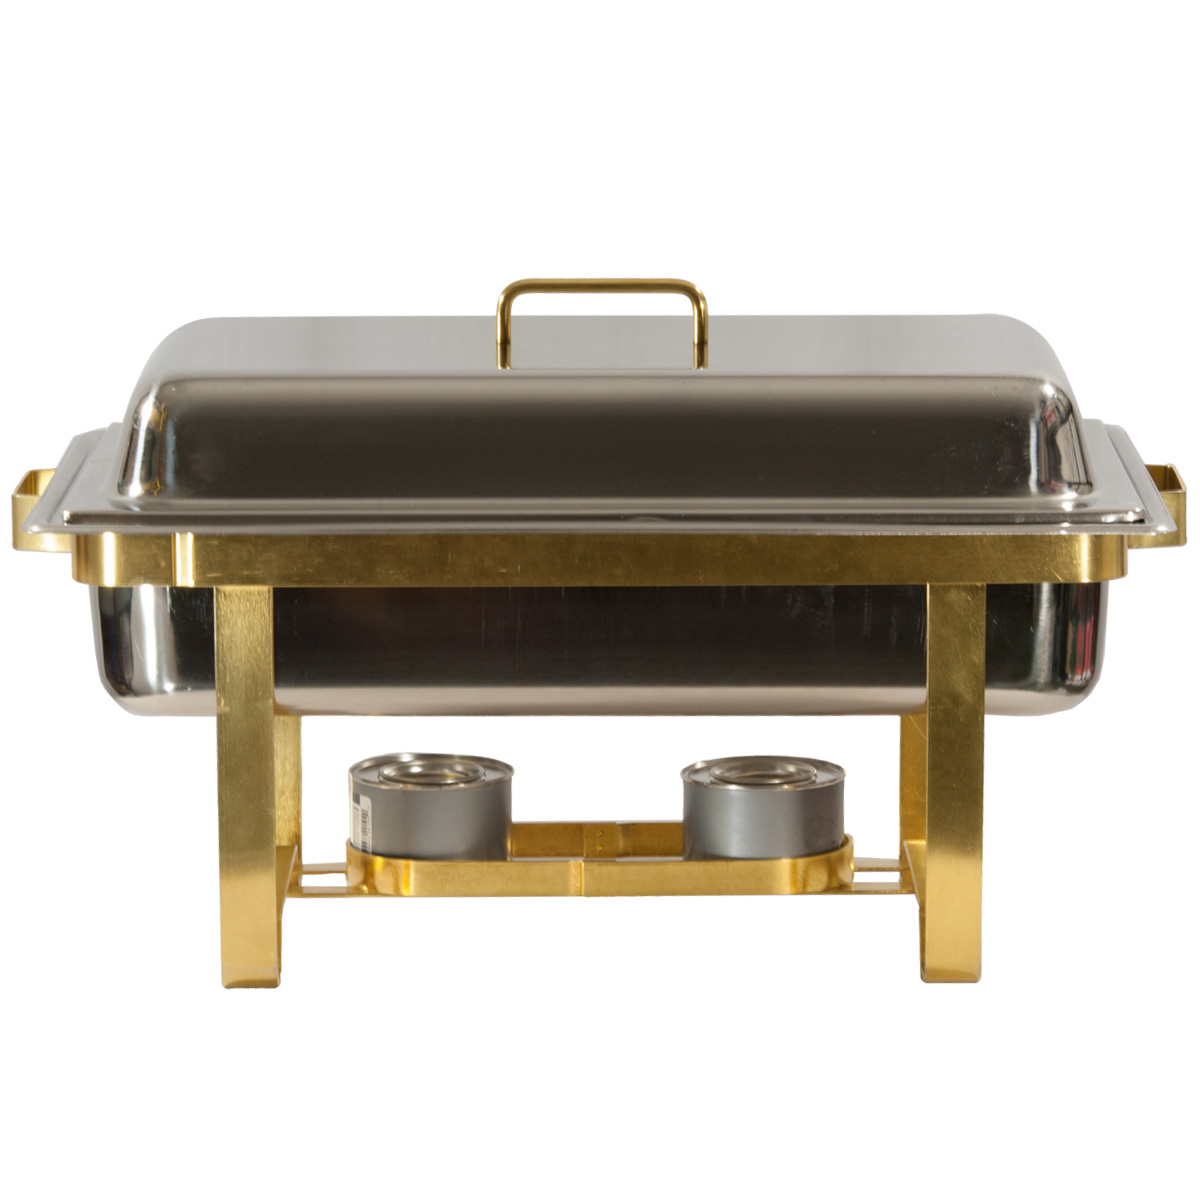 8 Quart Stainless With Brass Trim Chafing Dish